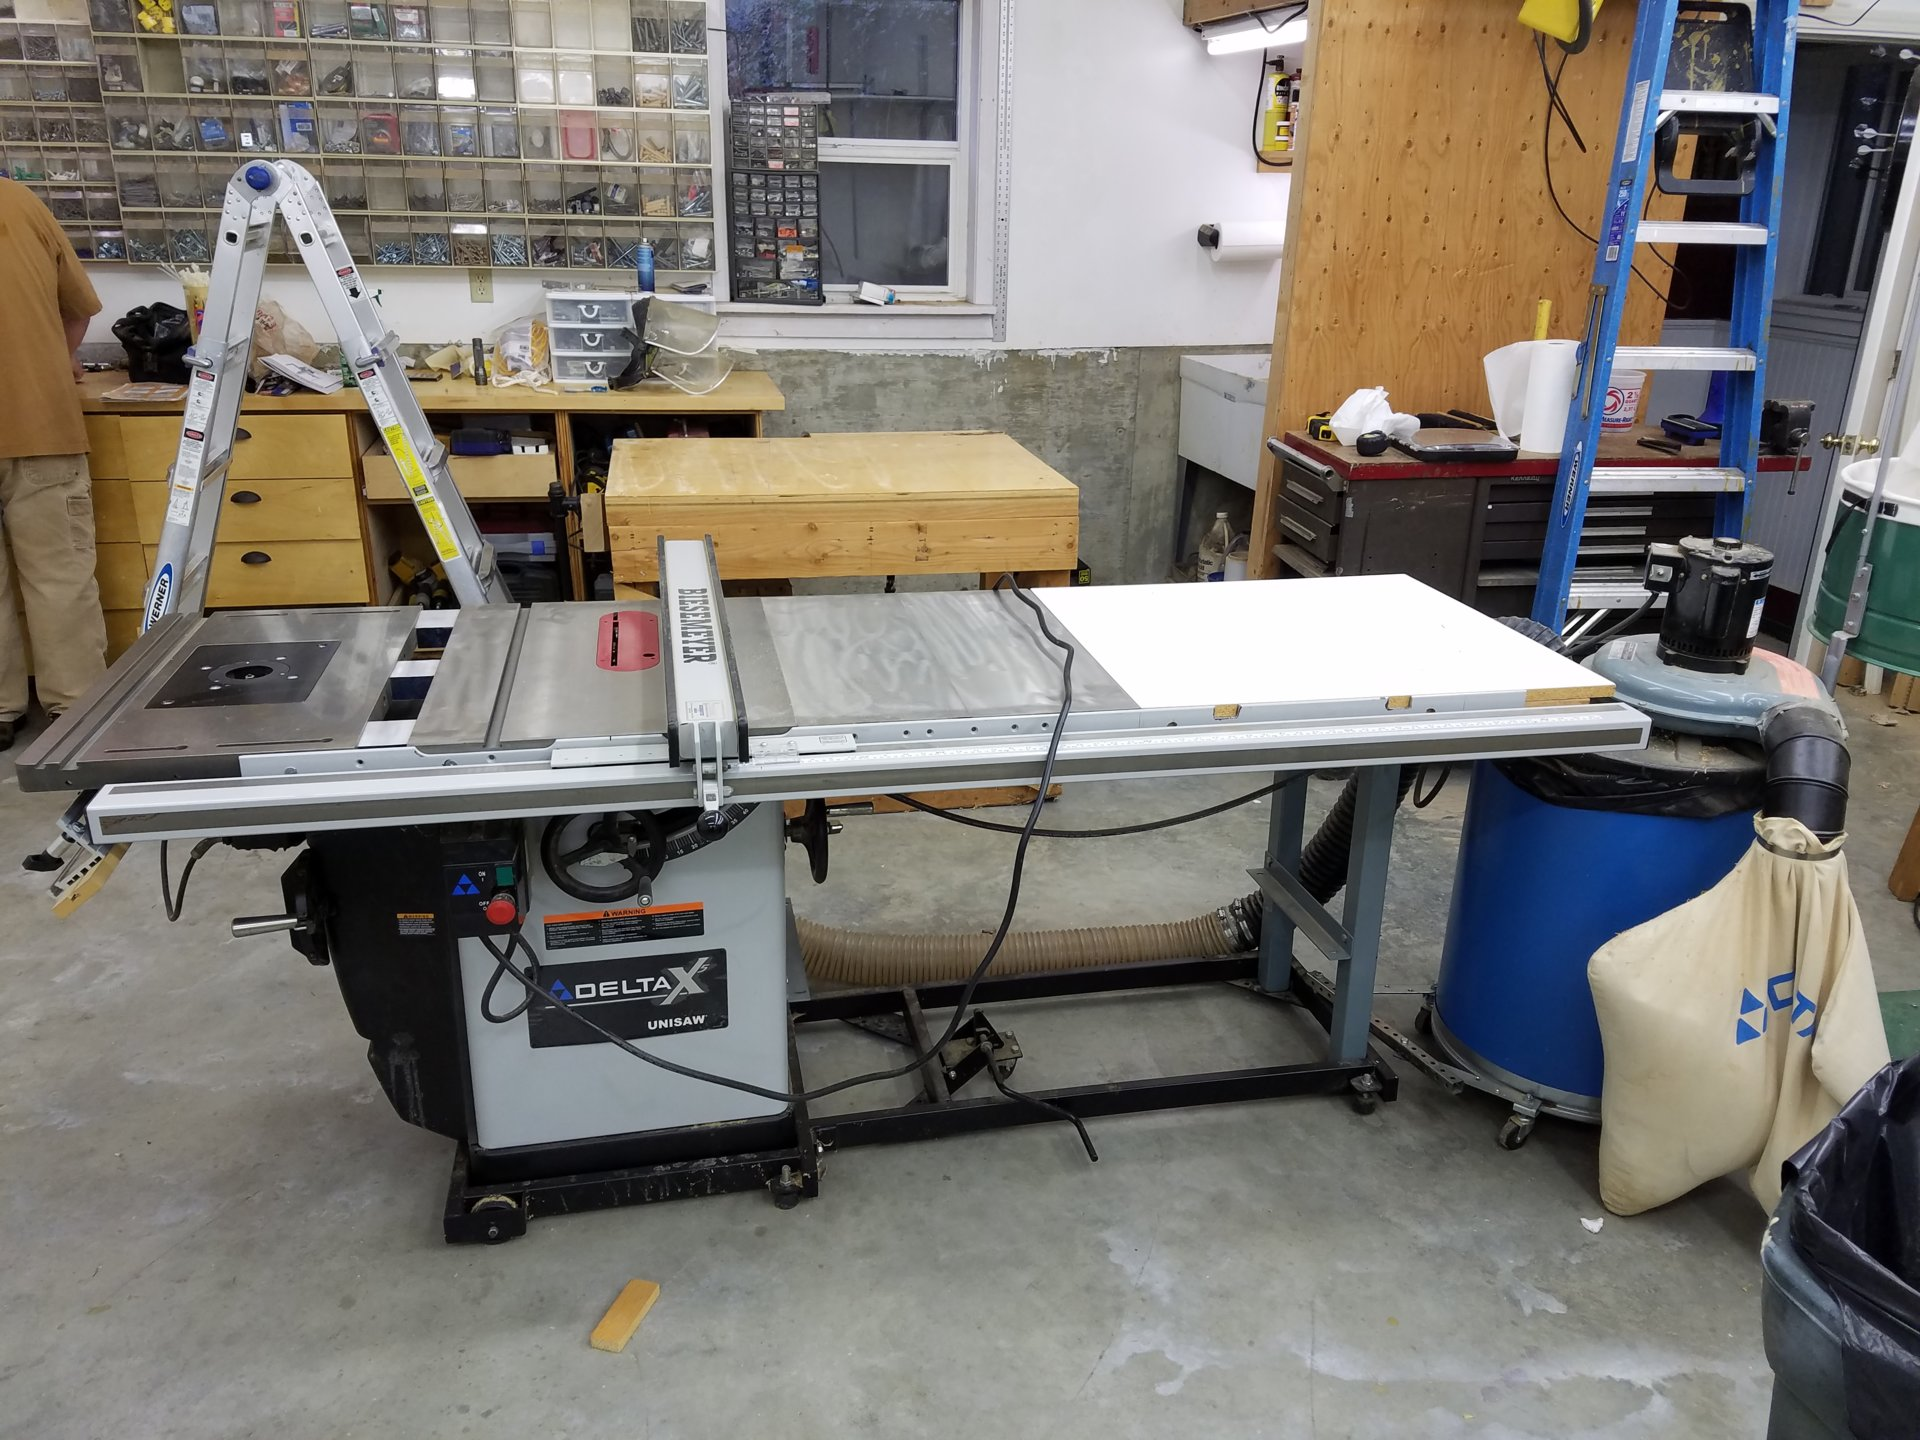 Delta Table Saw 36 L51x Bc50 Bloodydecks